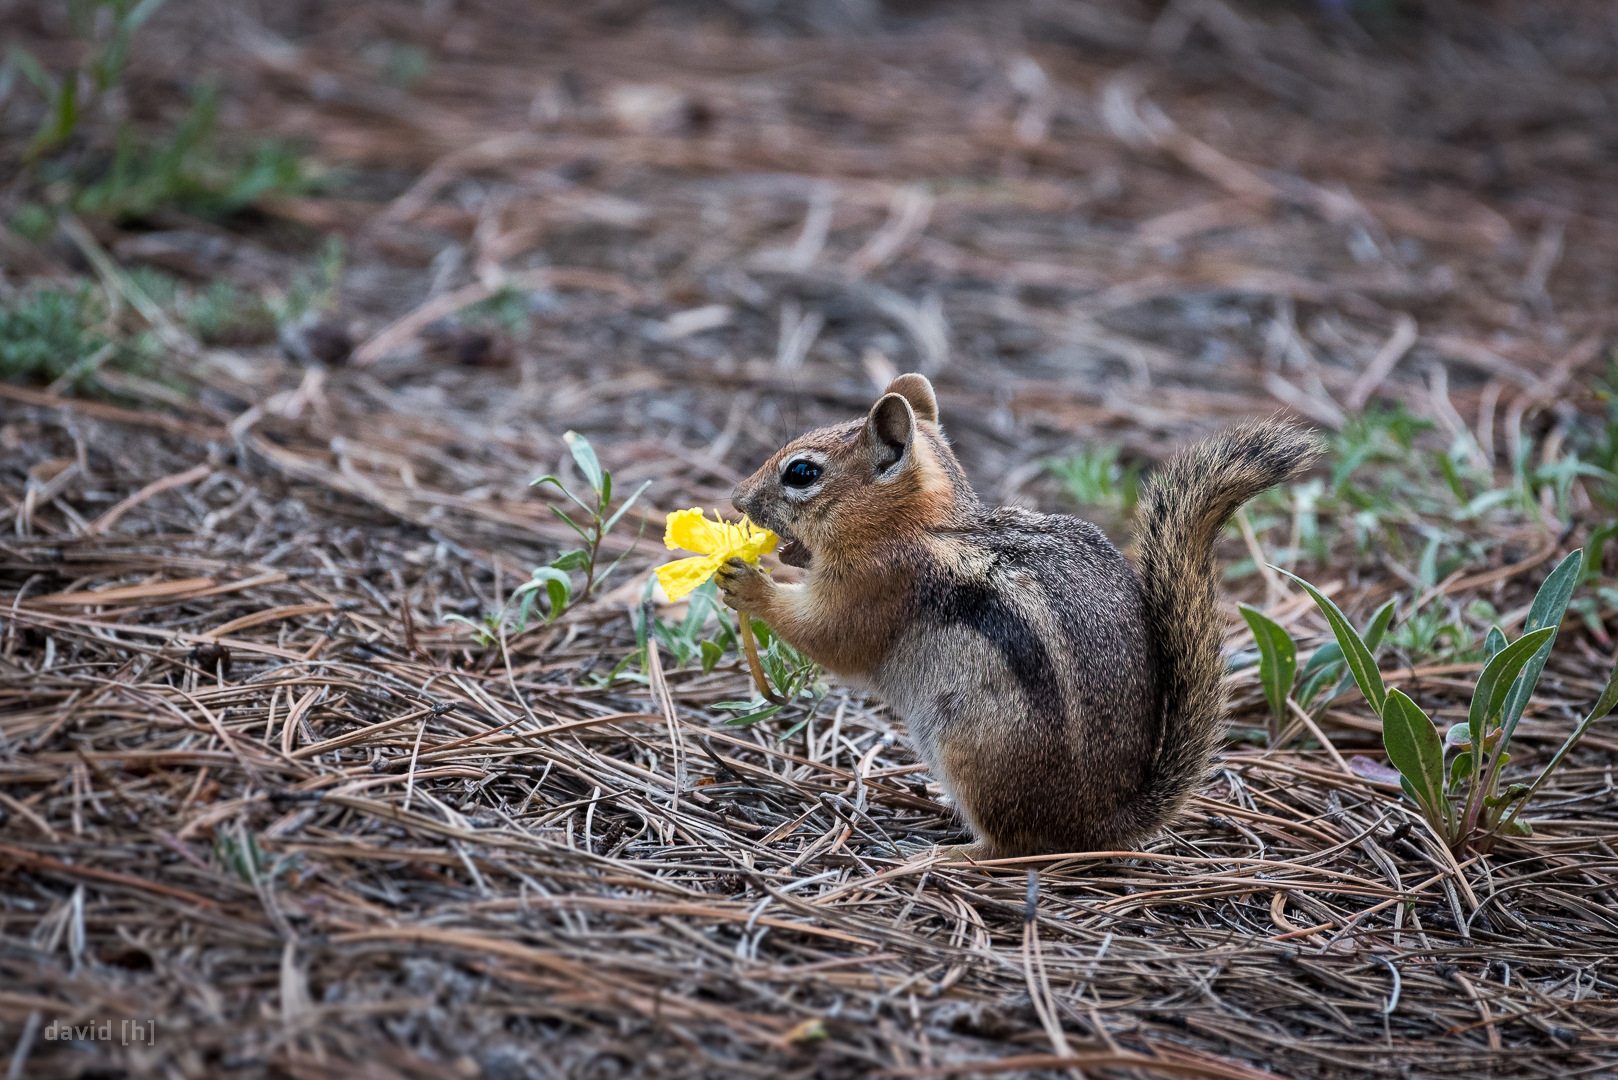 A chipmunk munching away at a yellow flower, right next to our campsite.